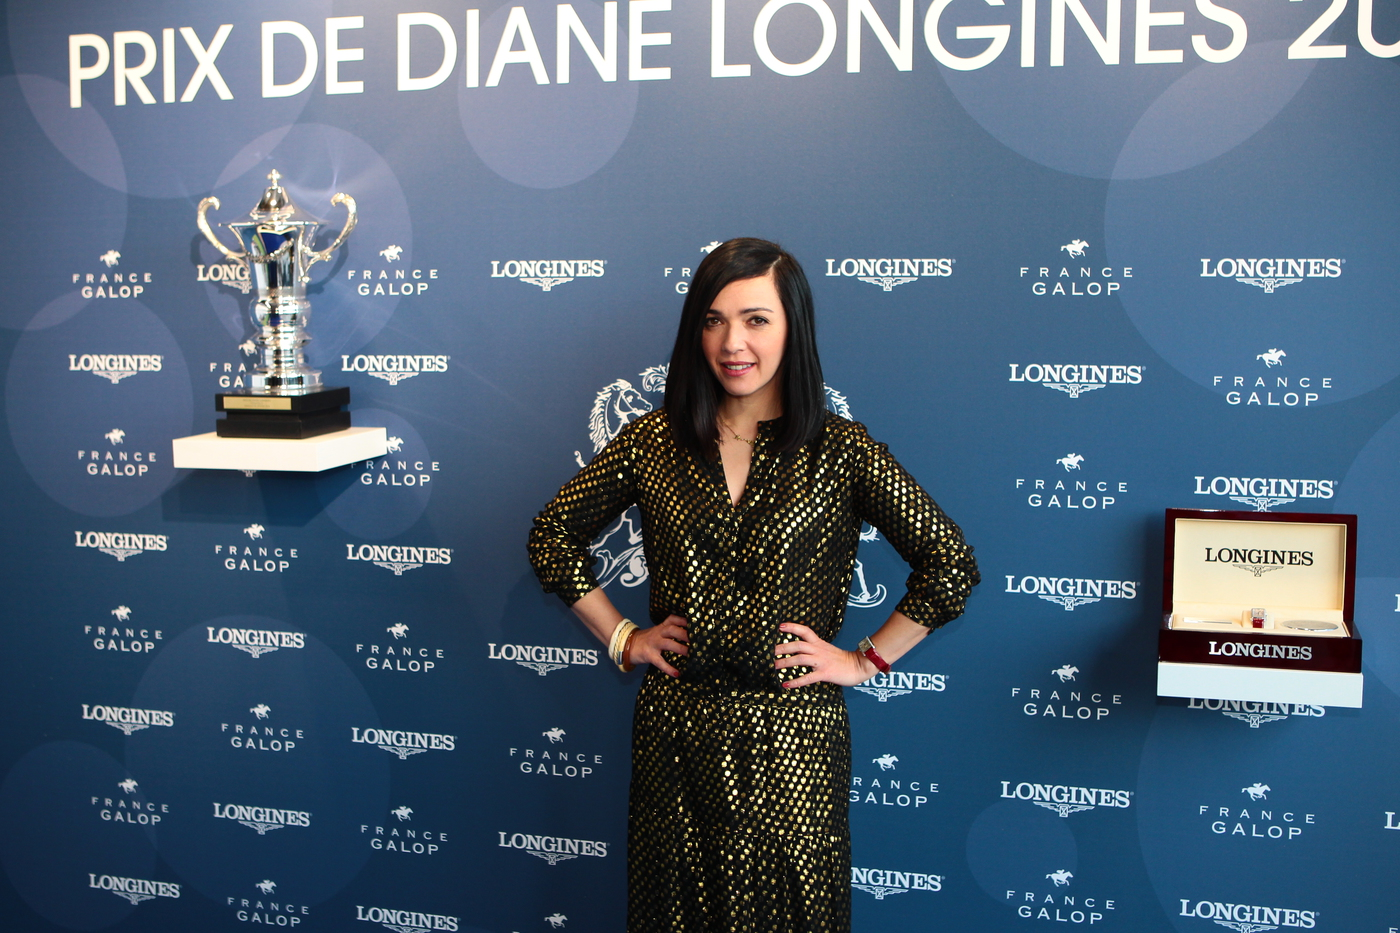 Longines Flat Racing Event: The most elegant Garden Party in the heart of the Prix de Diane Longines ecstatic races 1